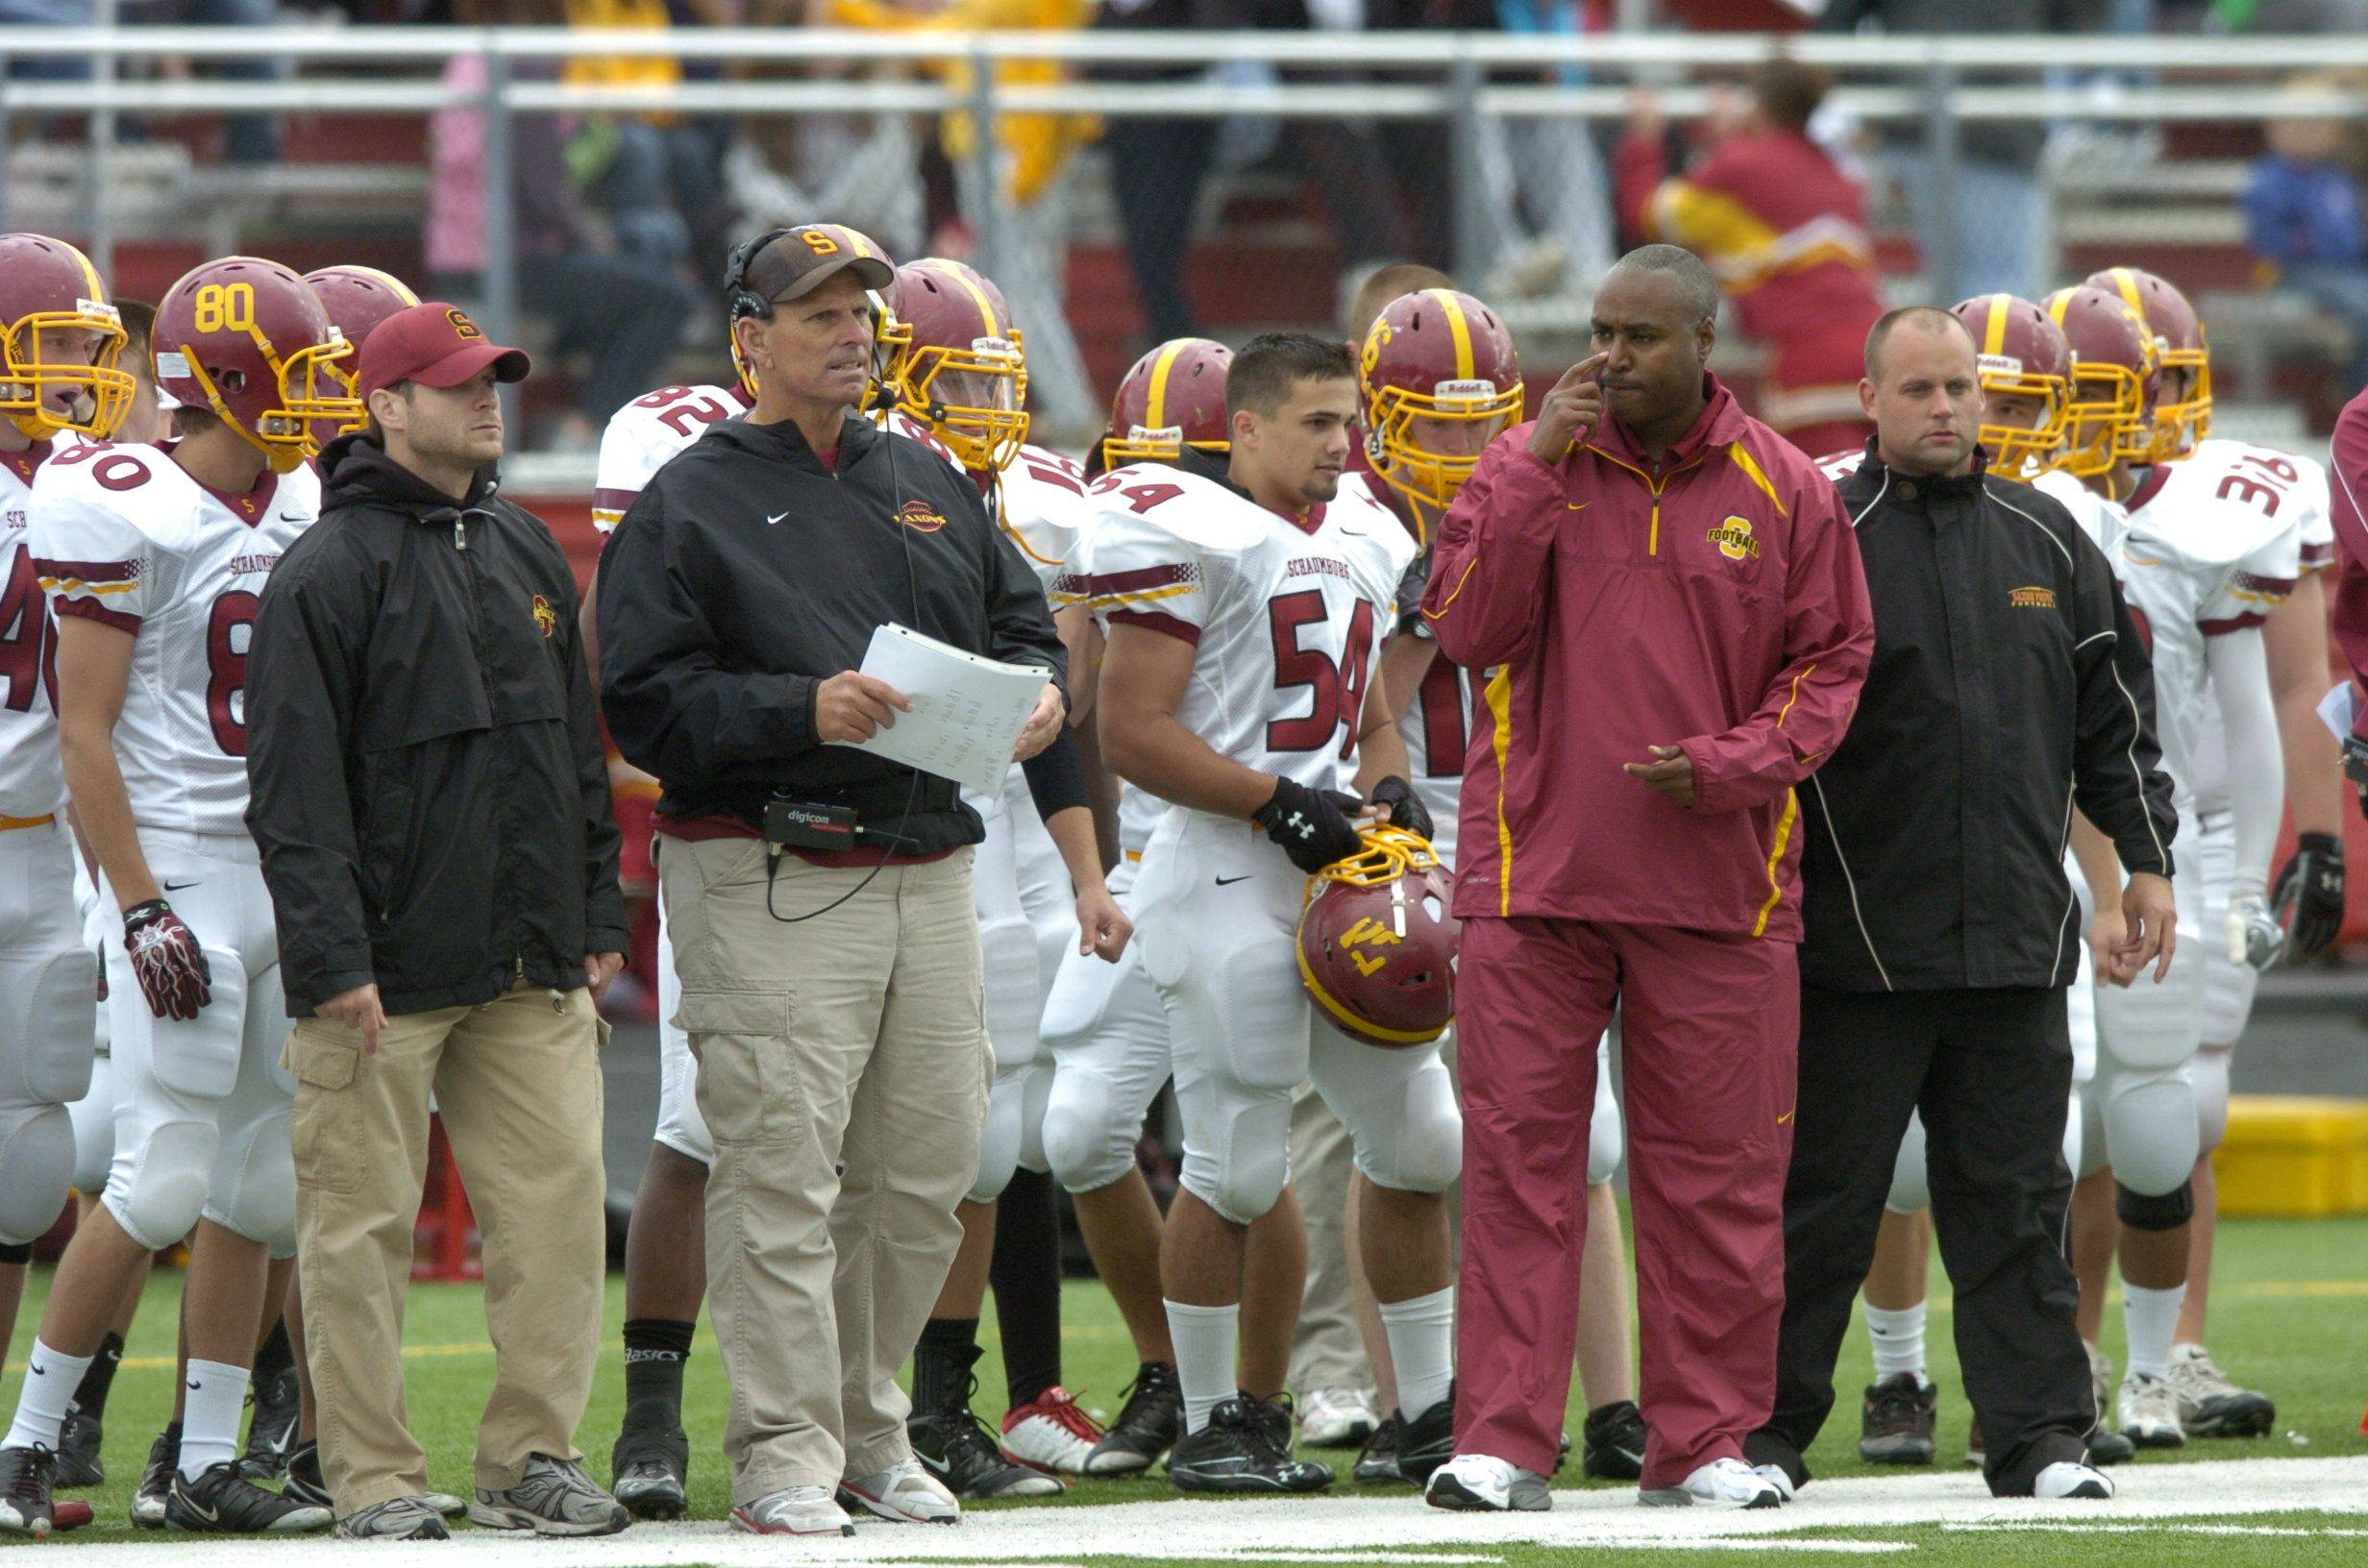 Schaumburg's coaching staff during last year's game at Barrington.